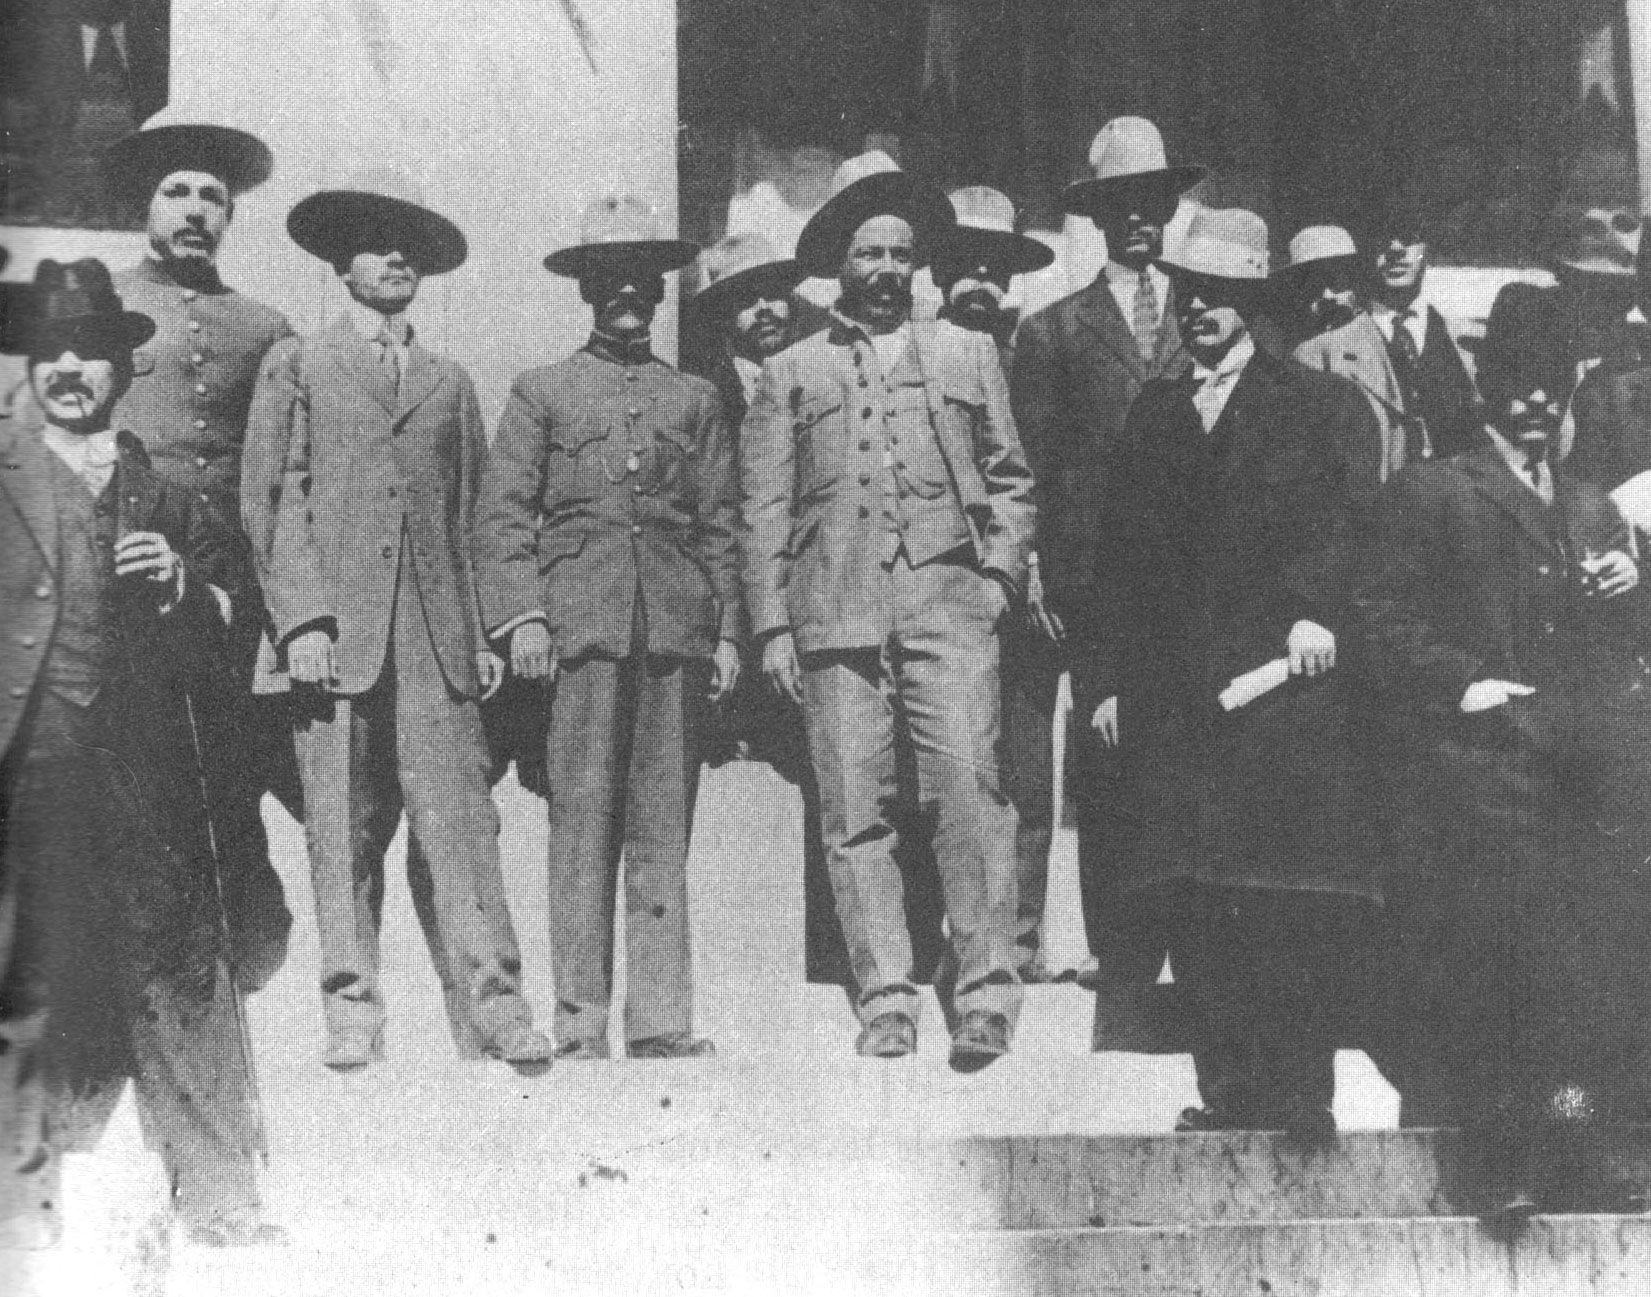 pancho villa and manuel chao to villa s right in chihuahua pancho villa and manuel chao to villa s right in chihuahua